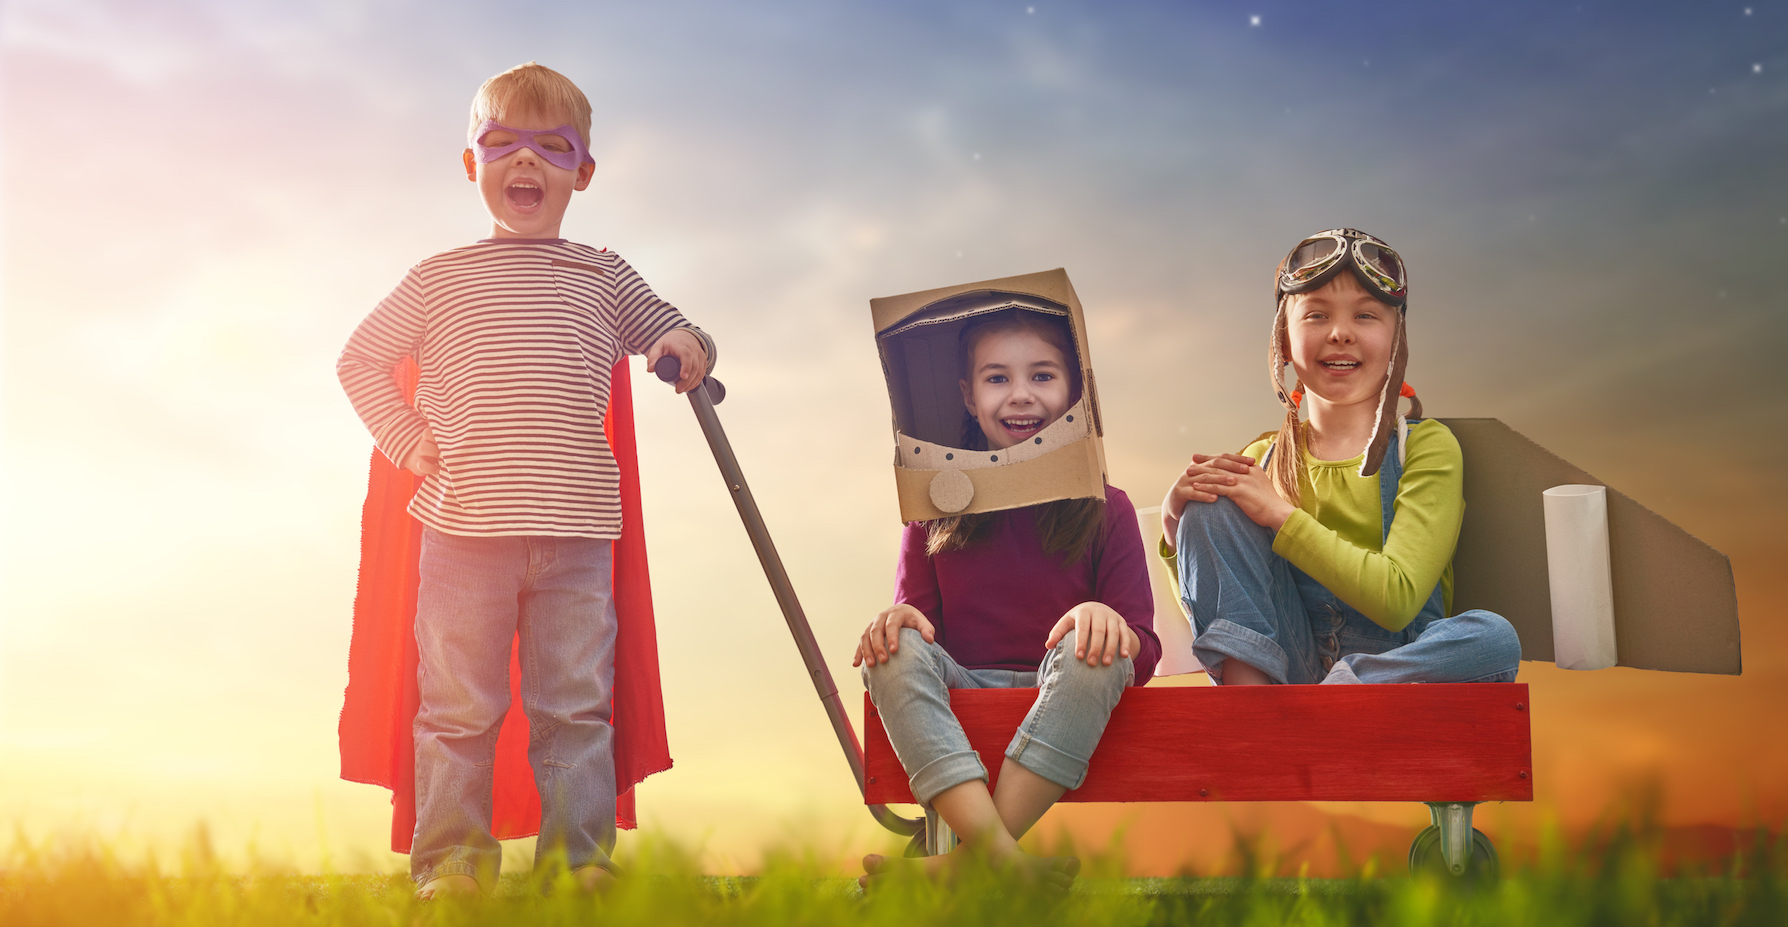 Children in astronaut, pilot and super hero costumes are playing and dreaming. Portrait of funny kids on nature. Family friends games outdoors.